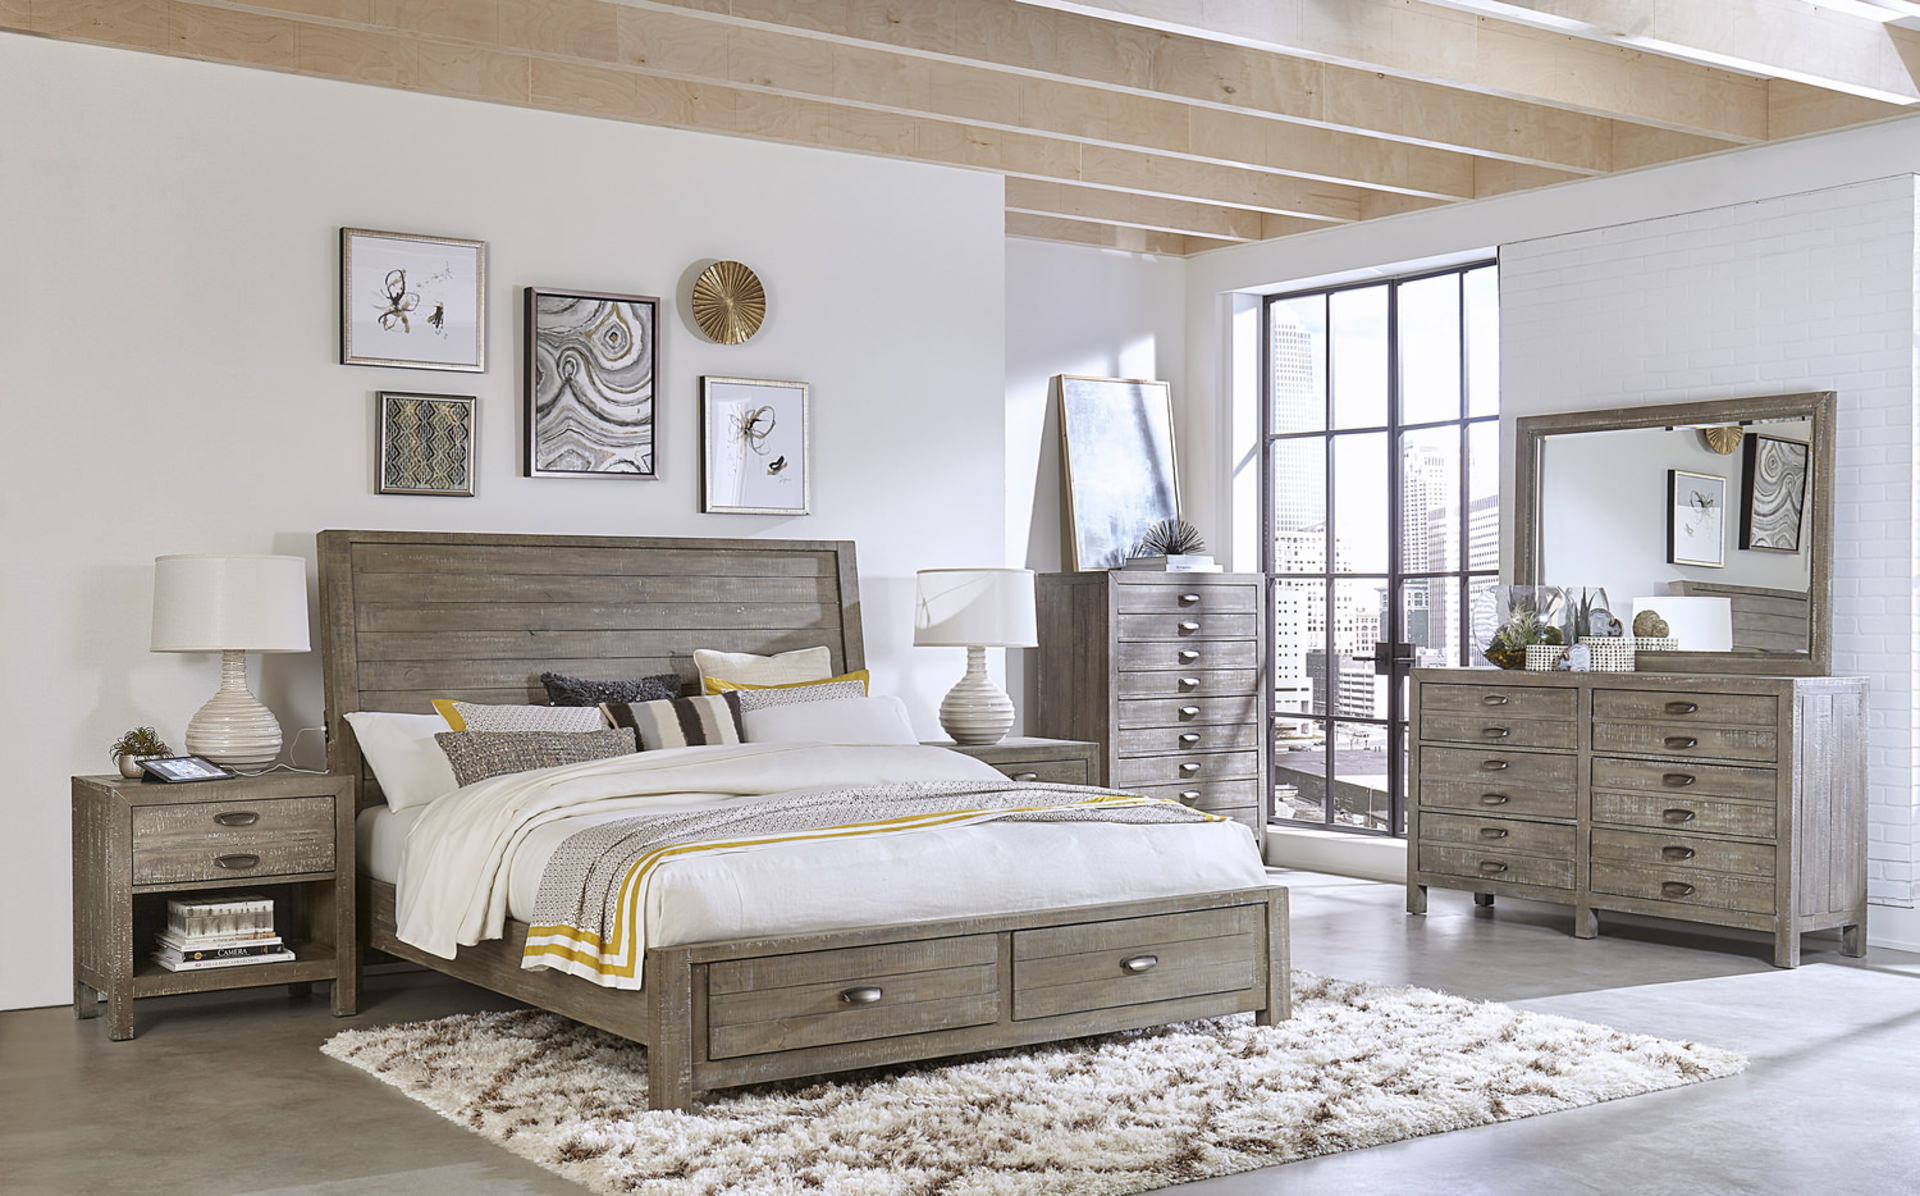 Small Bedroom Solutions - design blog by HOM Furniture